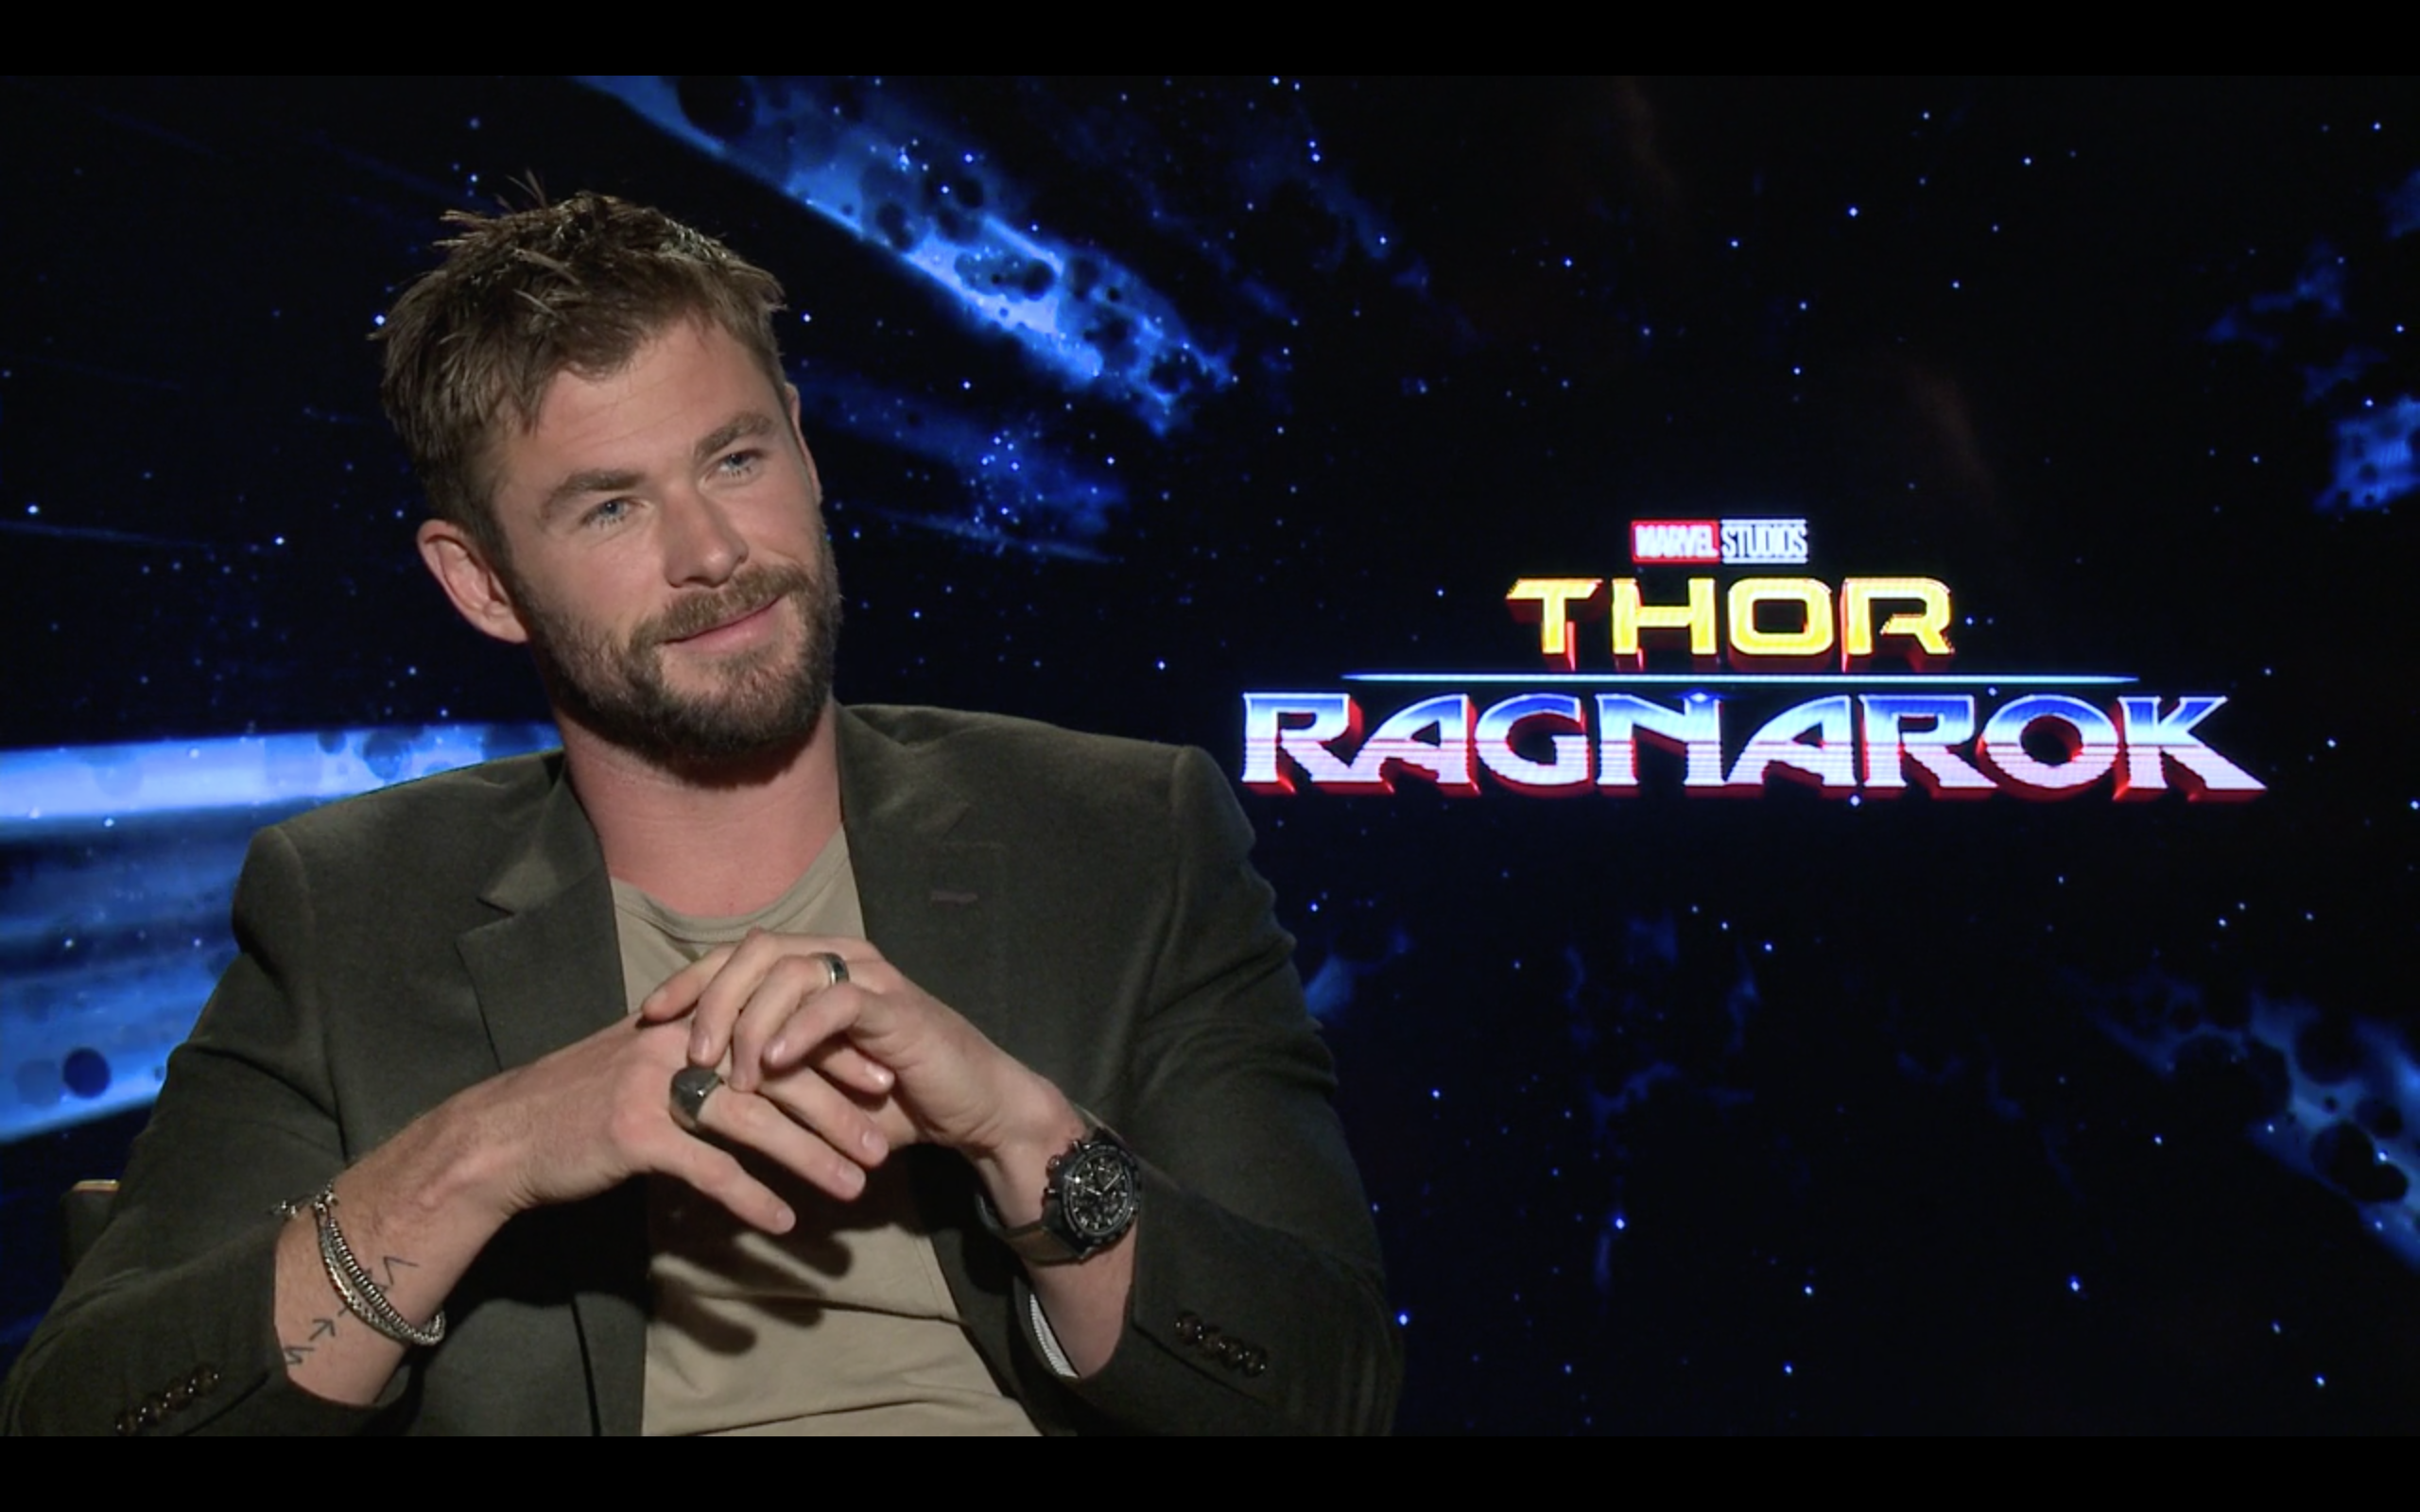 Chris Hemsworth promoting Thor: Ragnarok